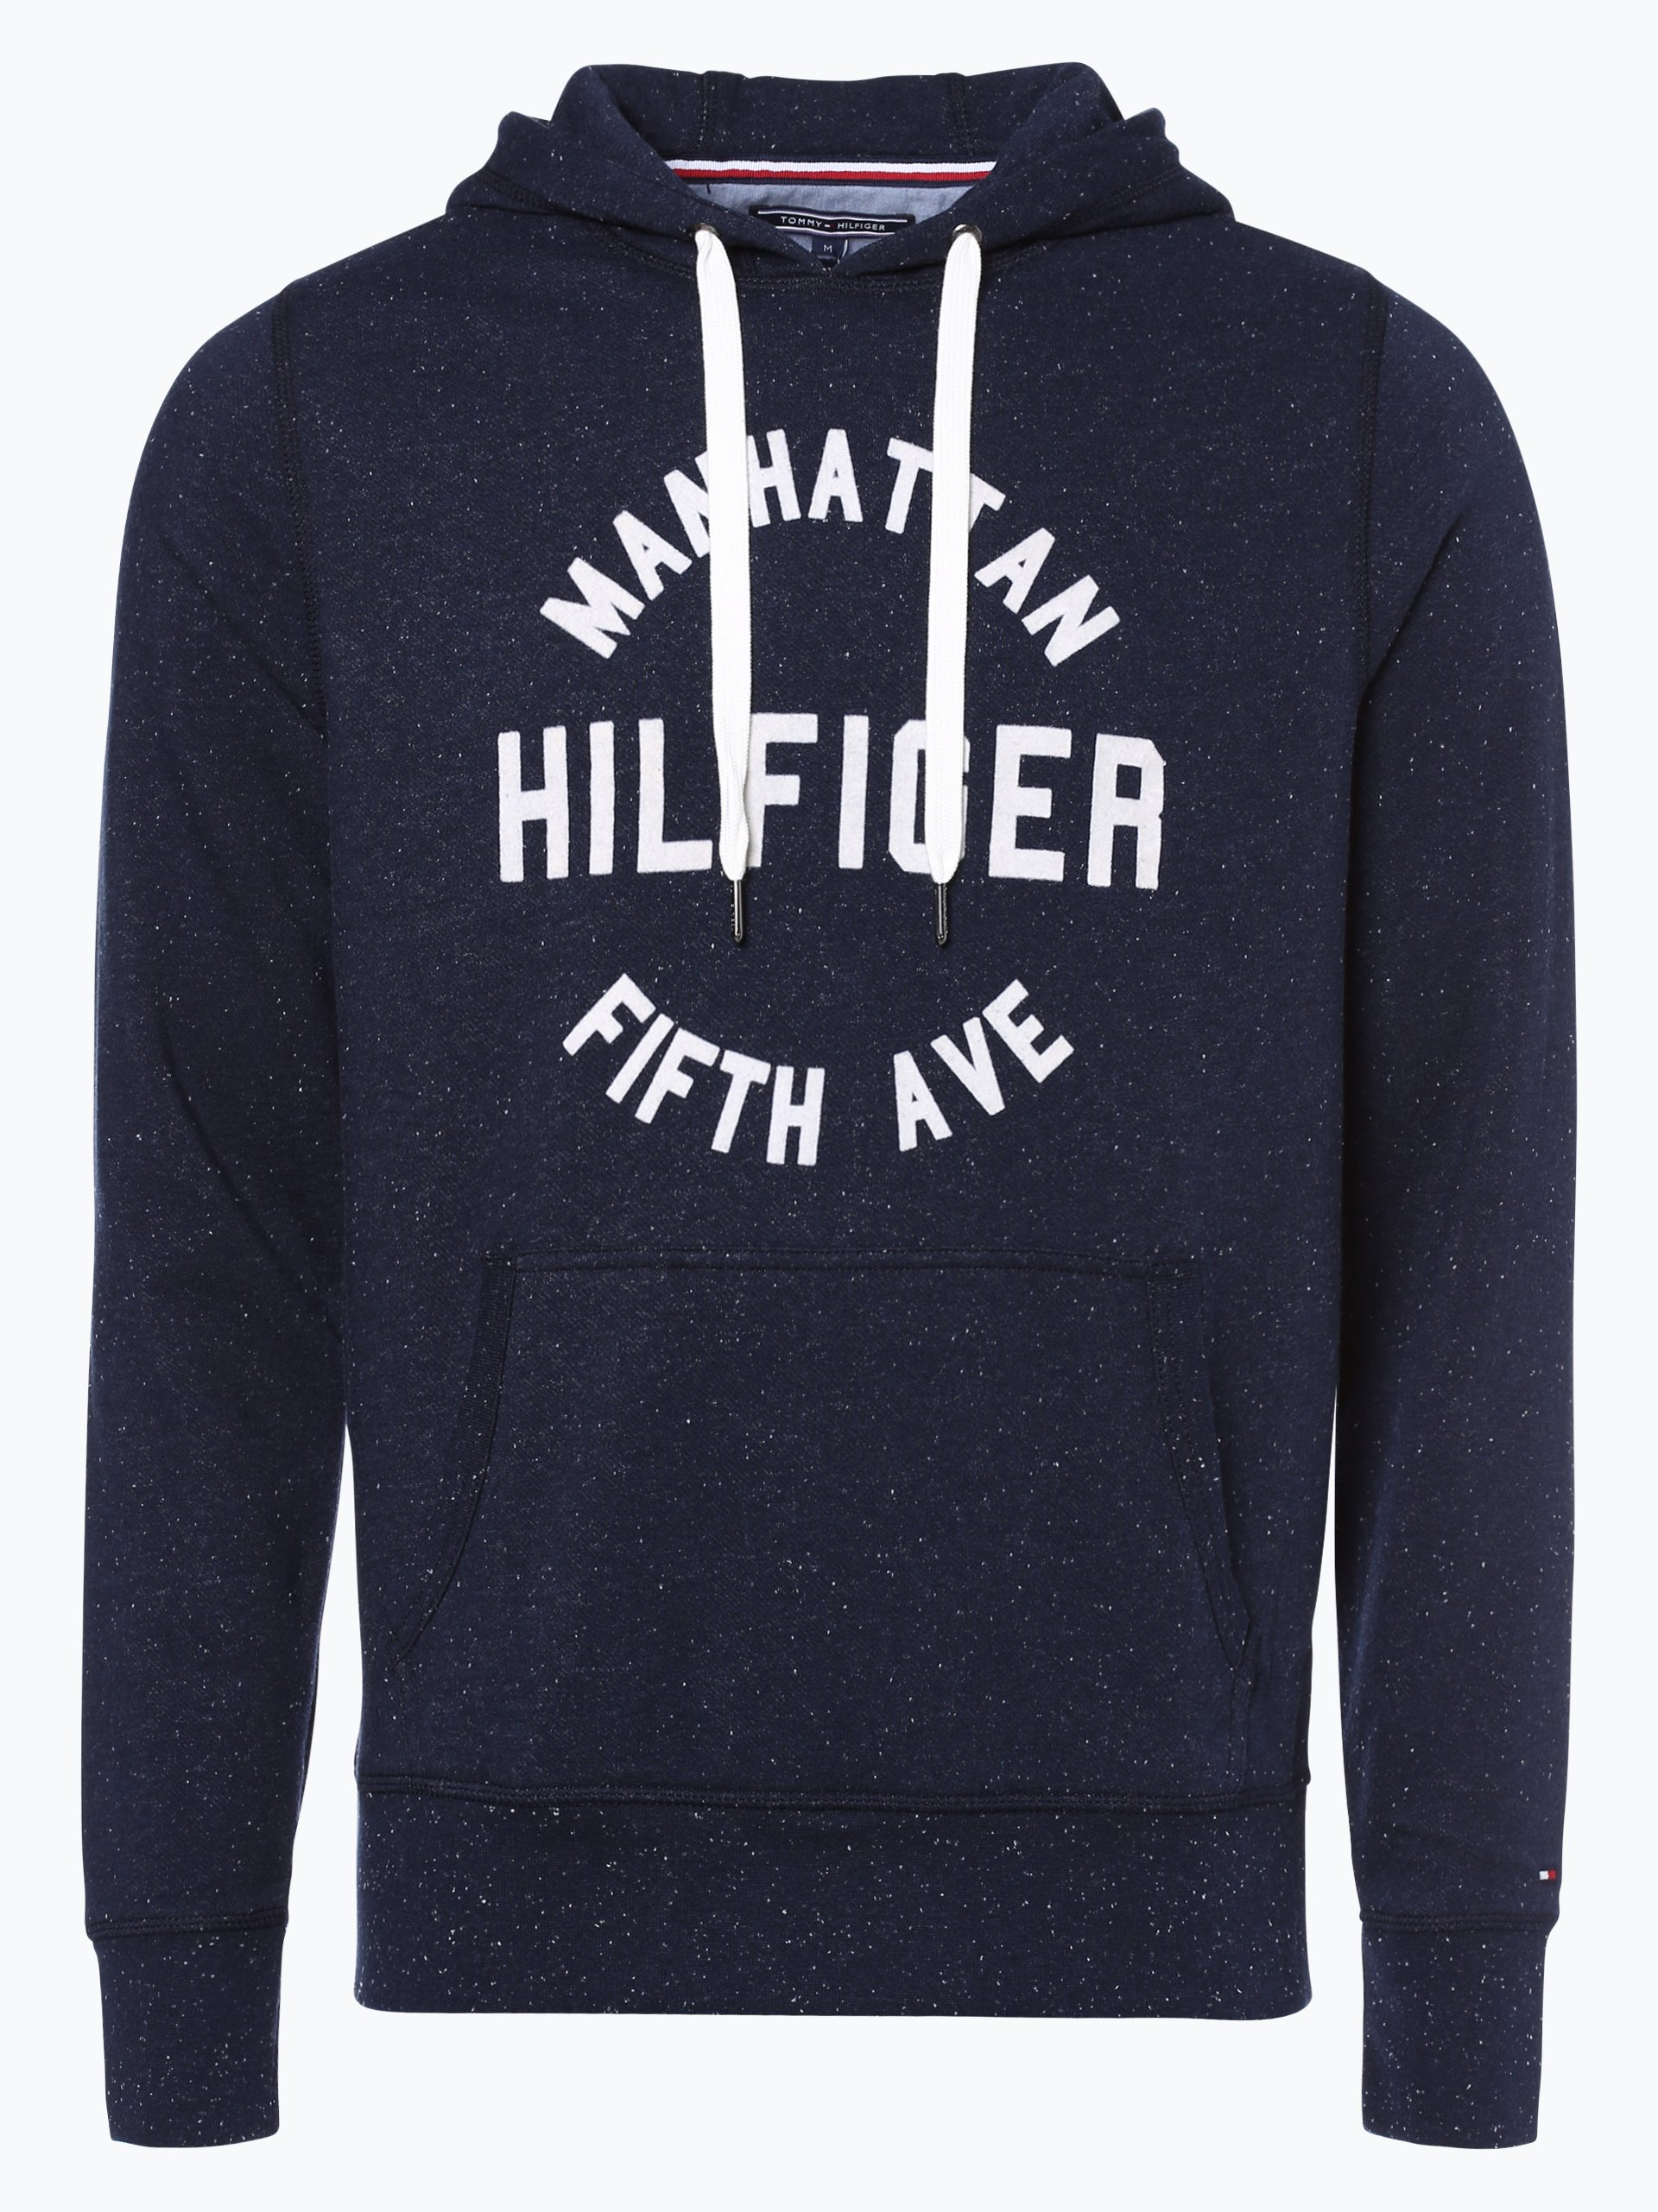 tommy hilfiger herren sweatshirt marine gemustert online kaufen vangraaf com. Black Bedroom Furniture Sets. Home Design Ideas